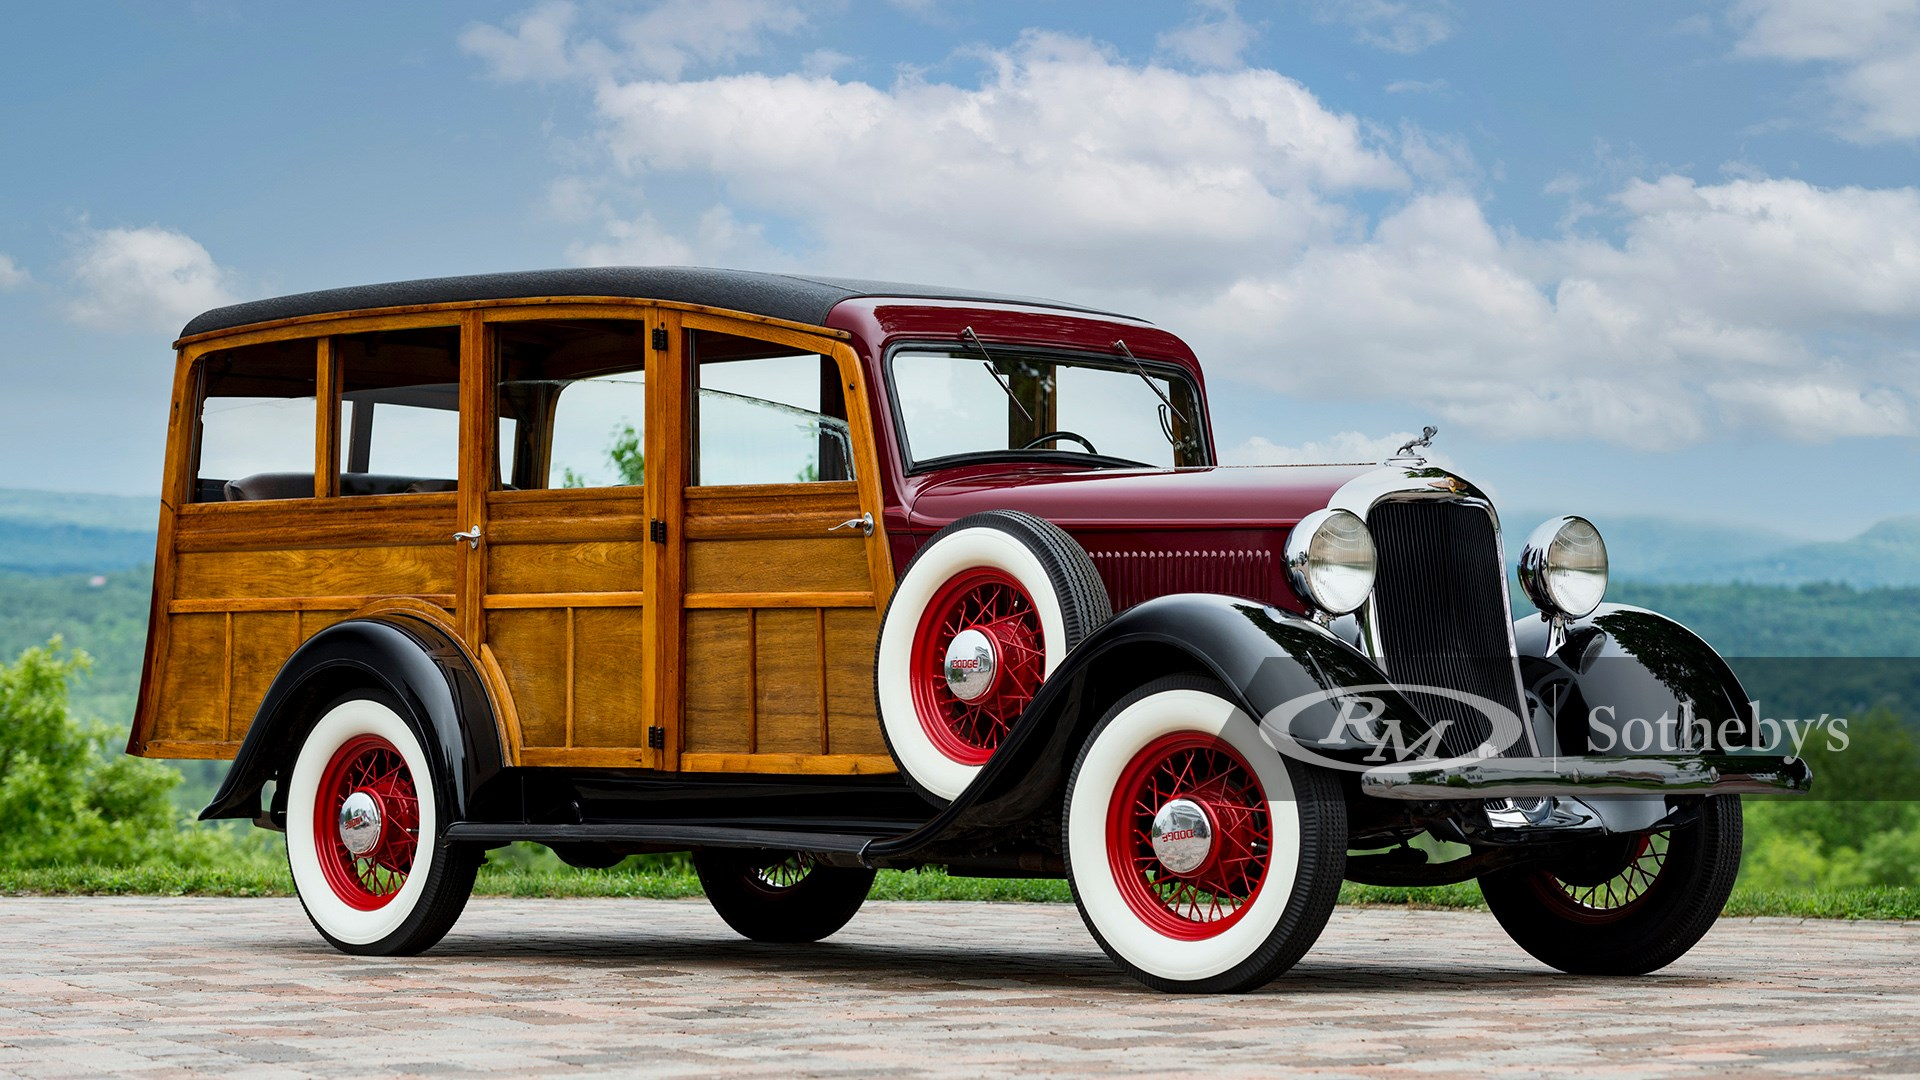 1934 Dodge KCL Westchester Suburban by Cantrell available at RM Sotheby's Amelia Island Live Auction 2021